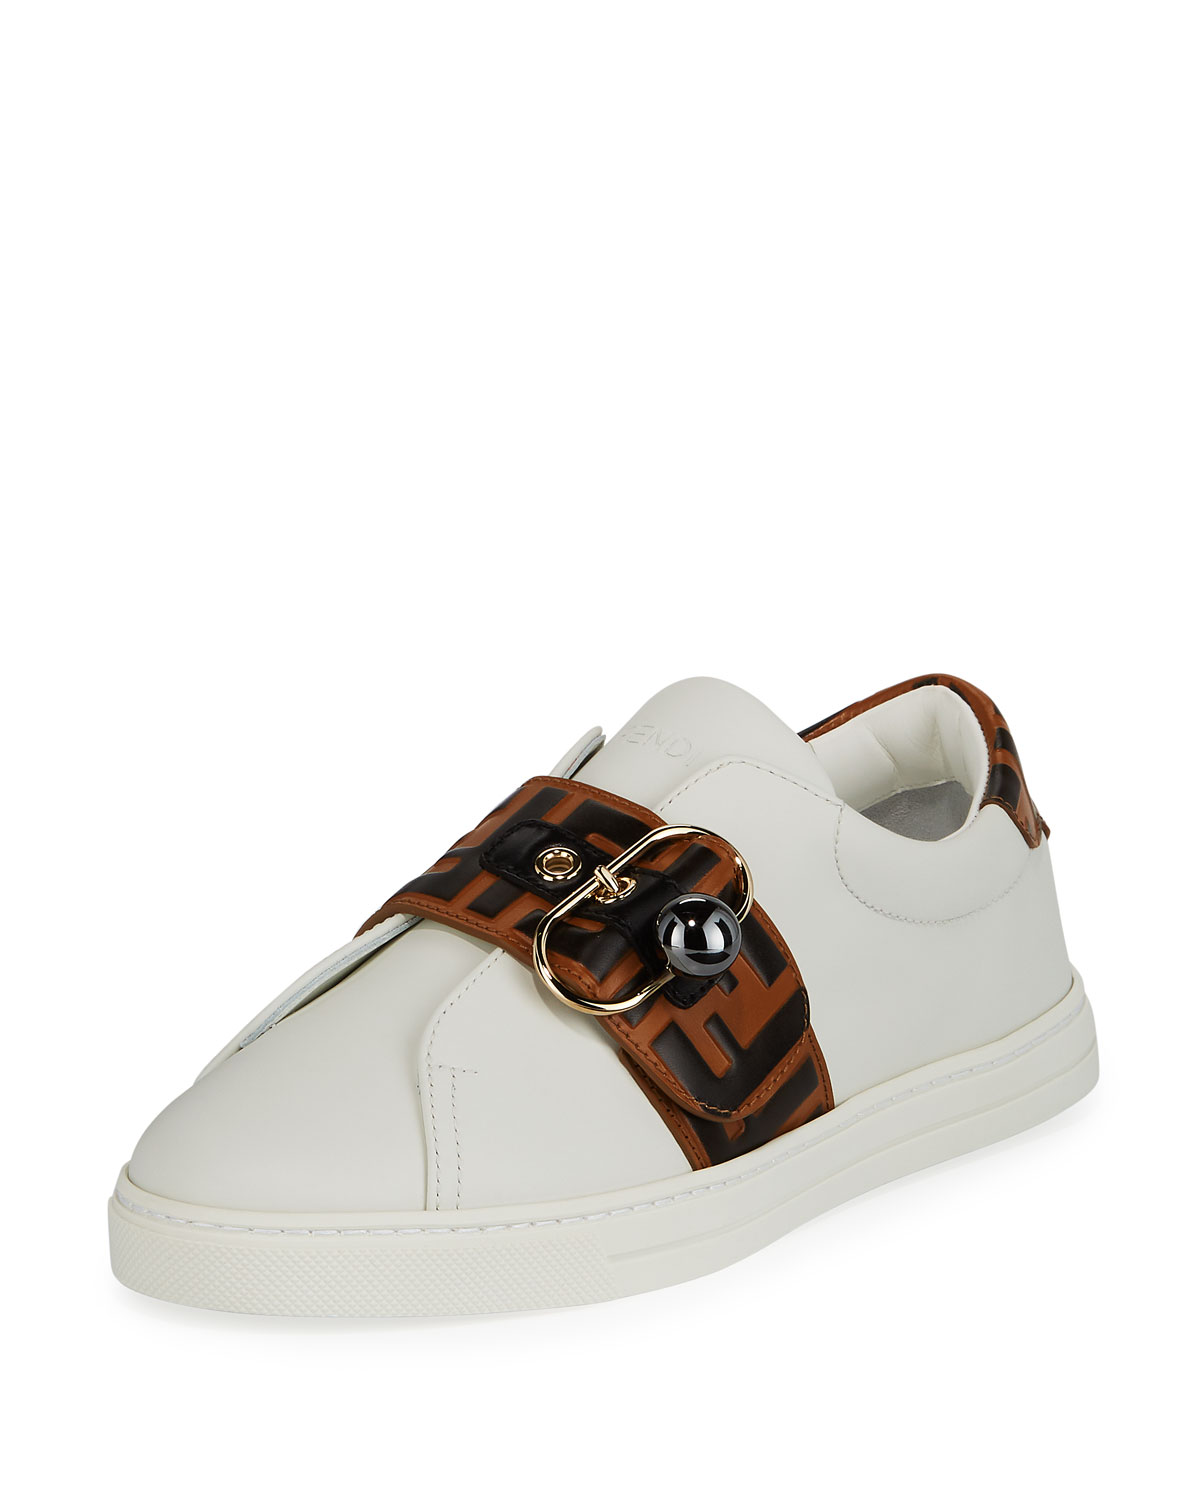 incredible prices arrives order online Pearland Leather Sneakers with FF Strap